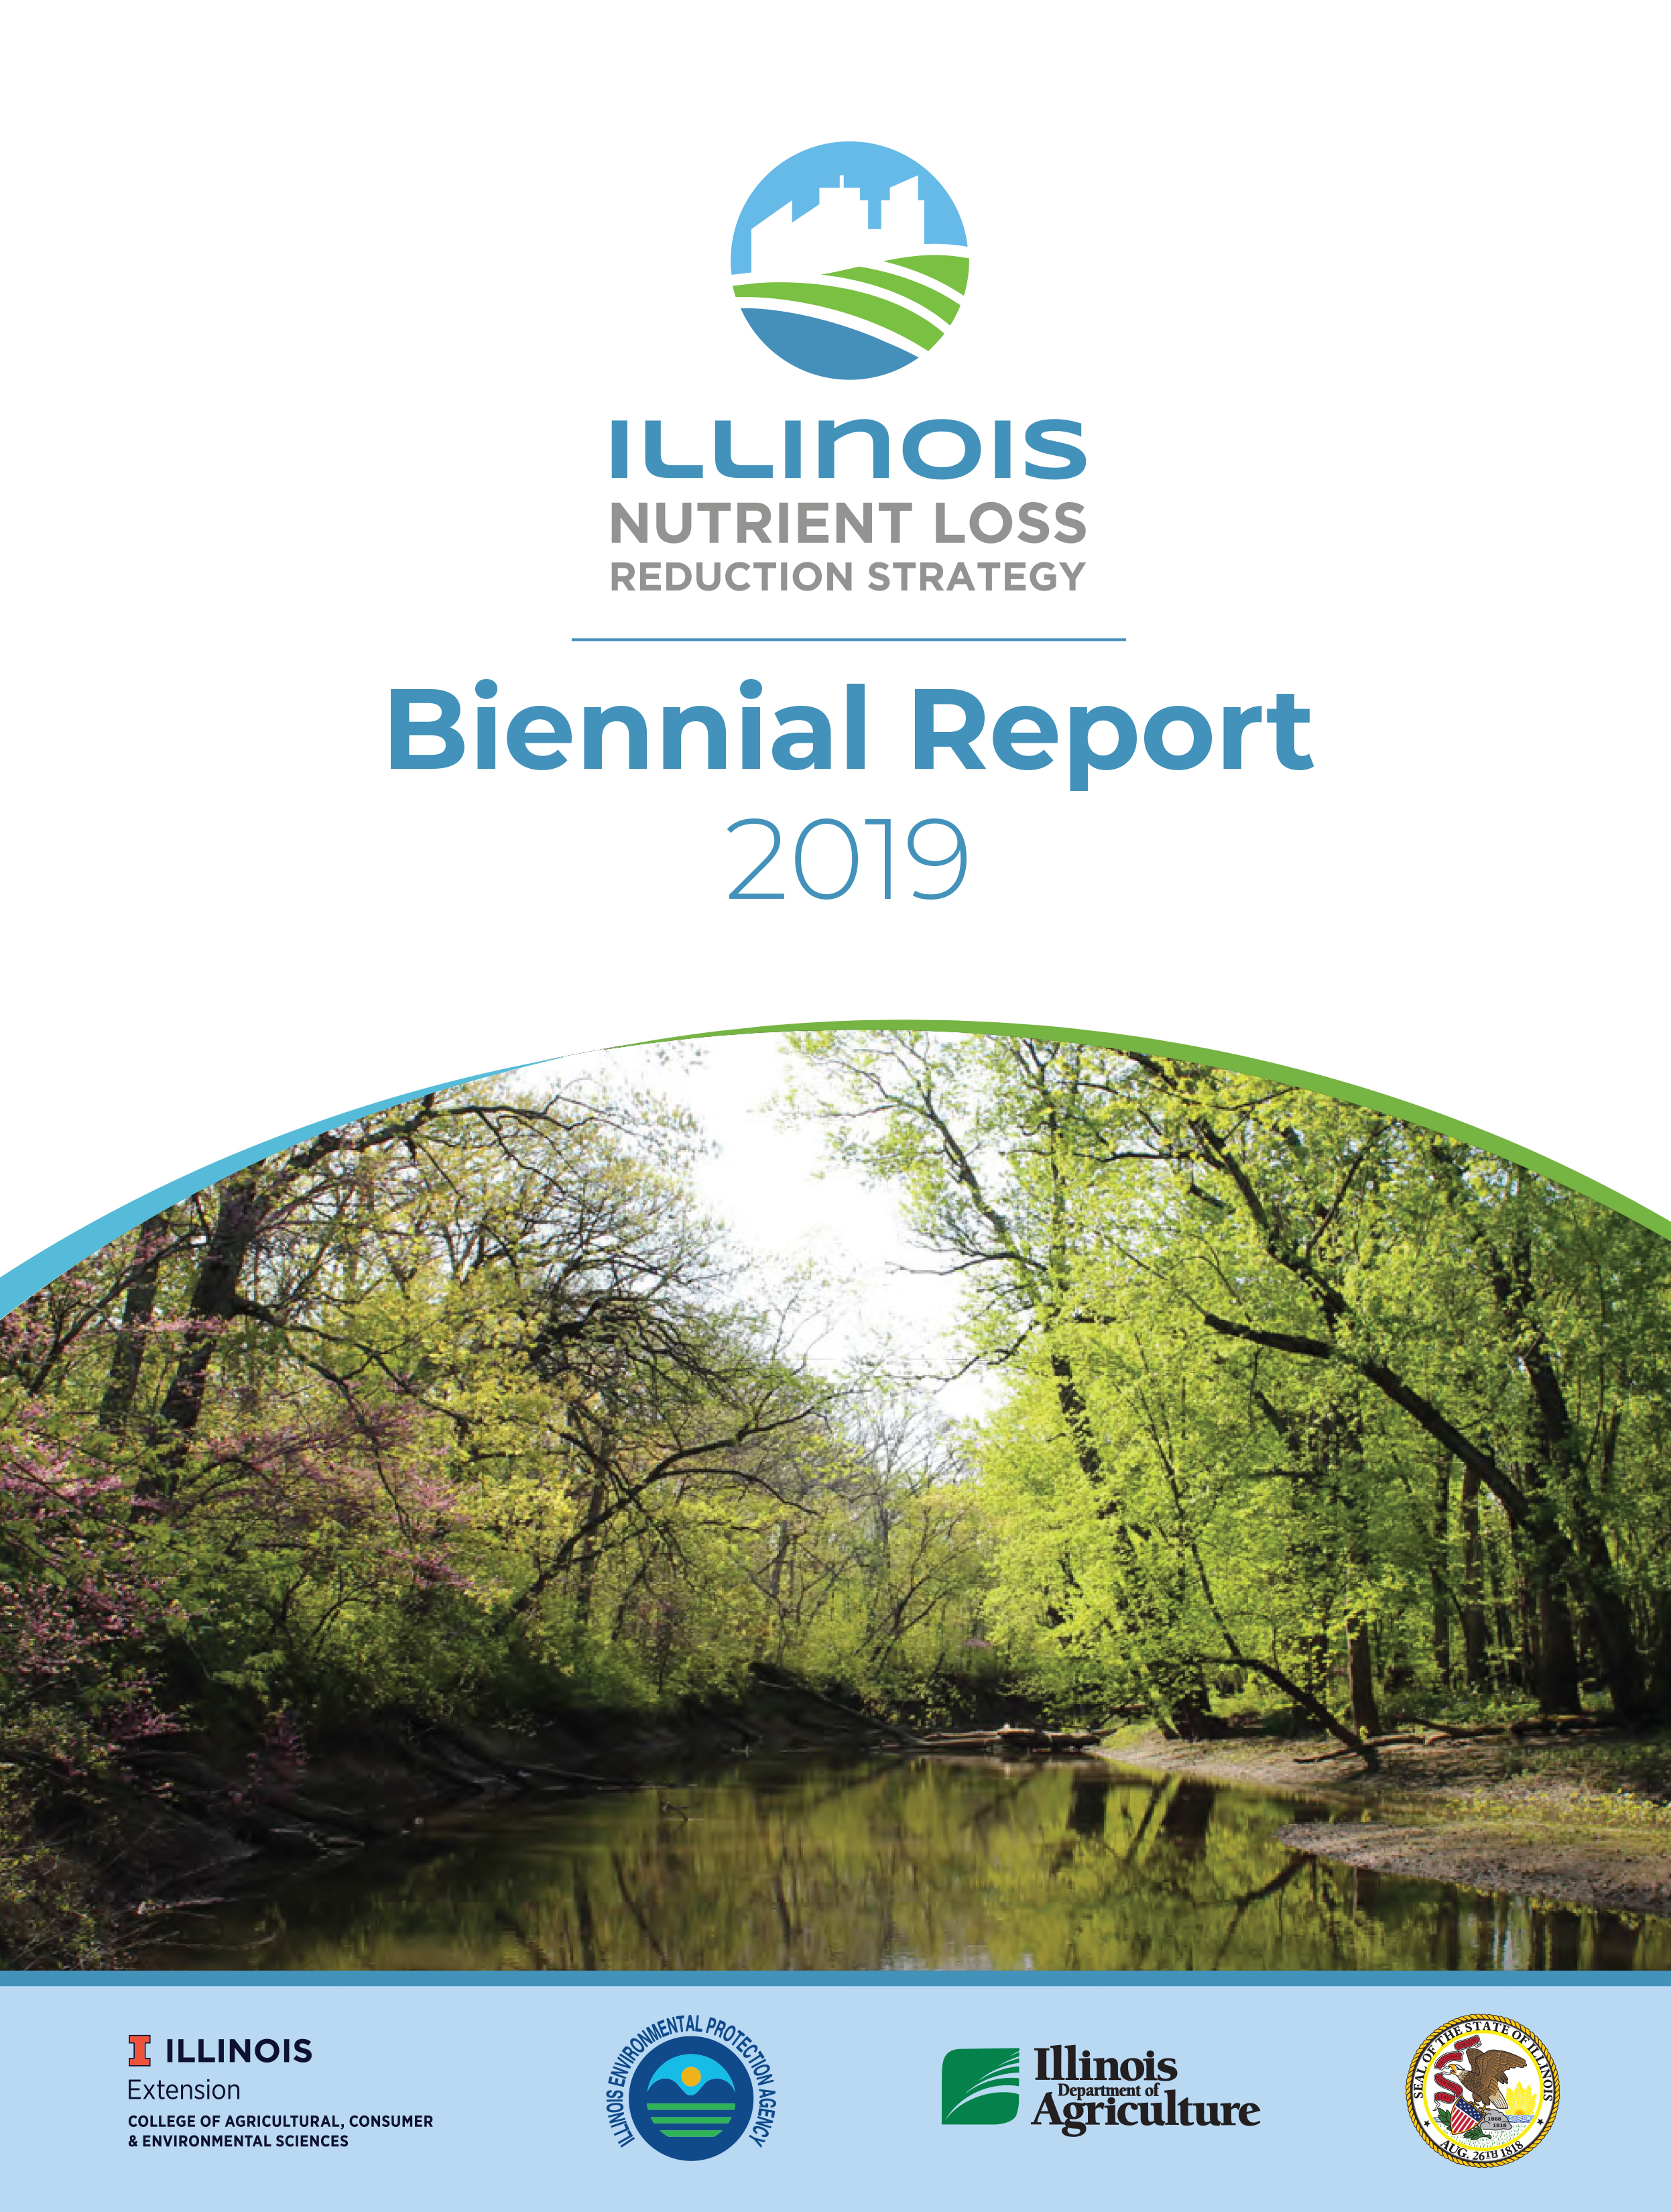 Illinois Nutrient Loss Reduction Strategy Biennial Report 2017-2018 Thumbnail